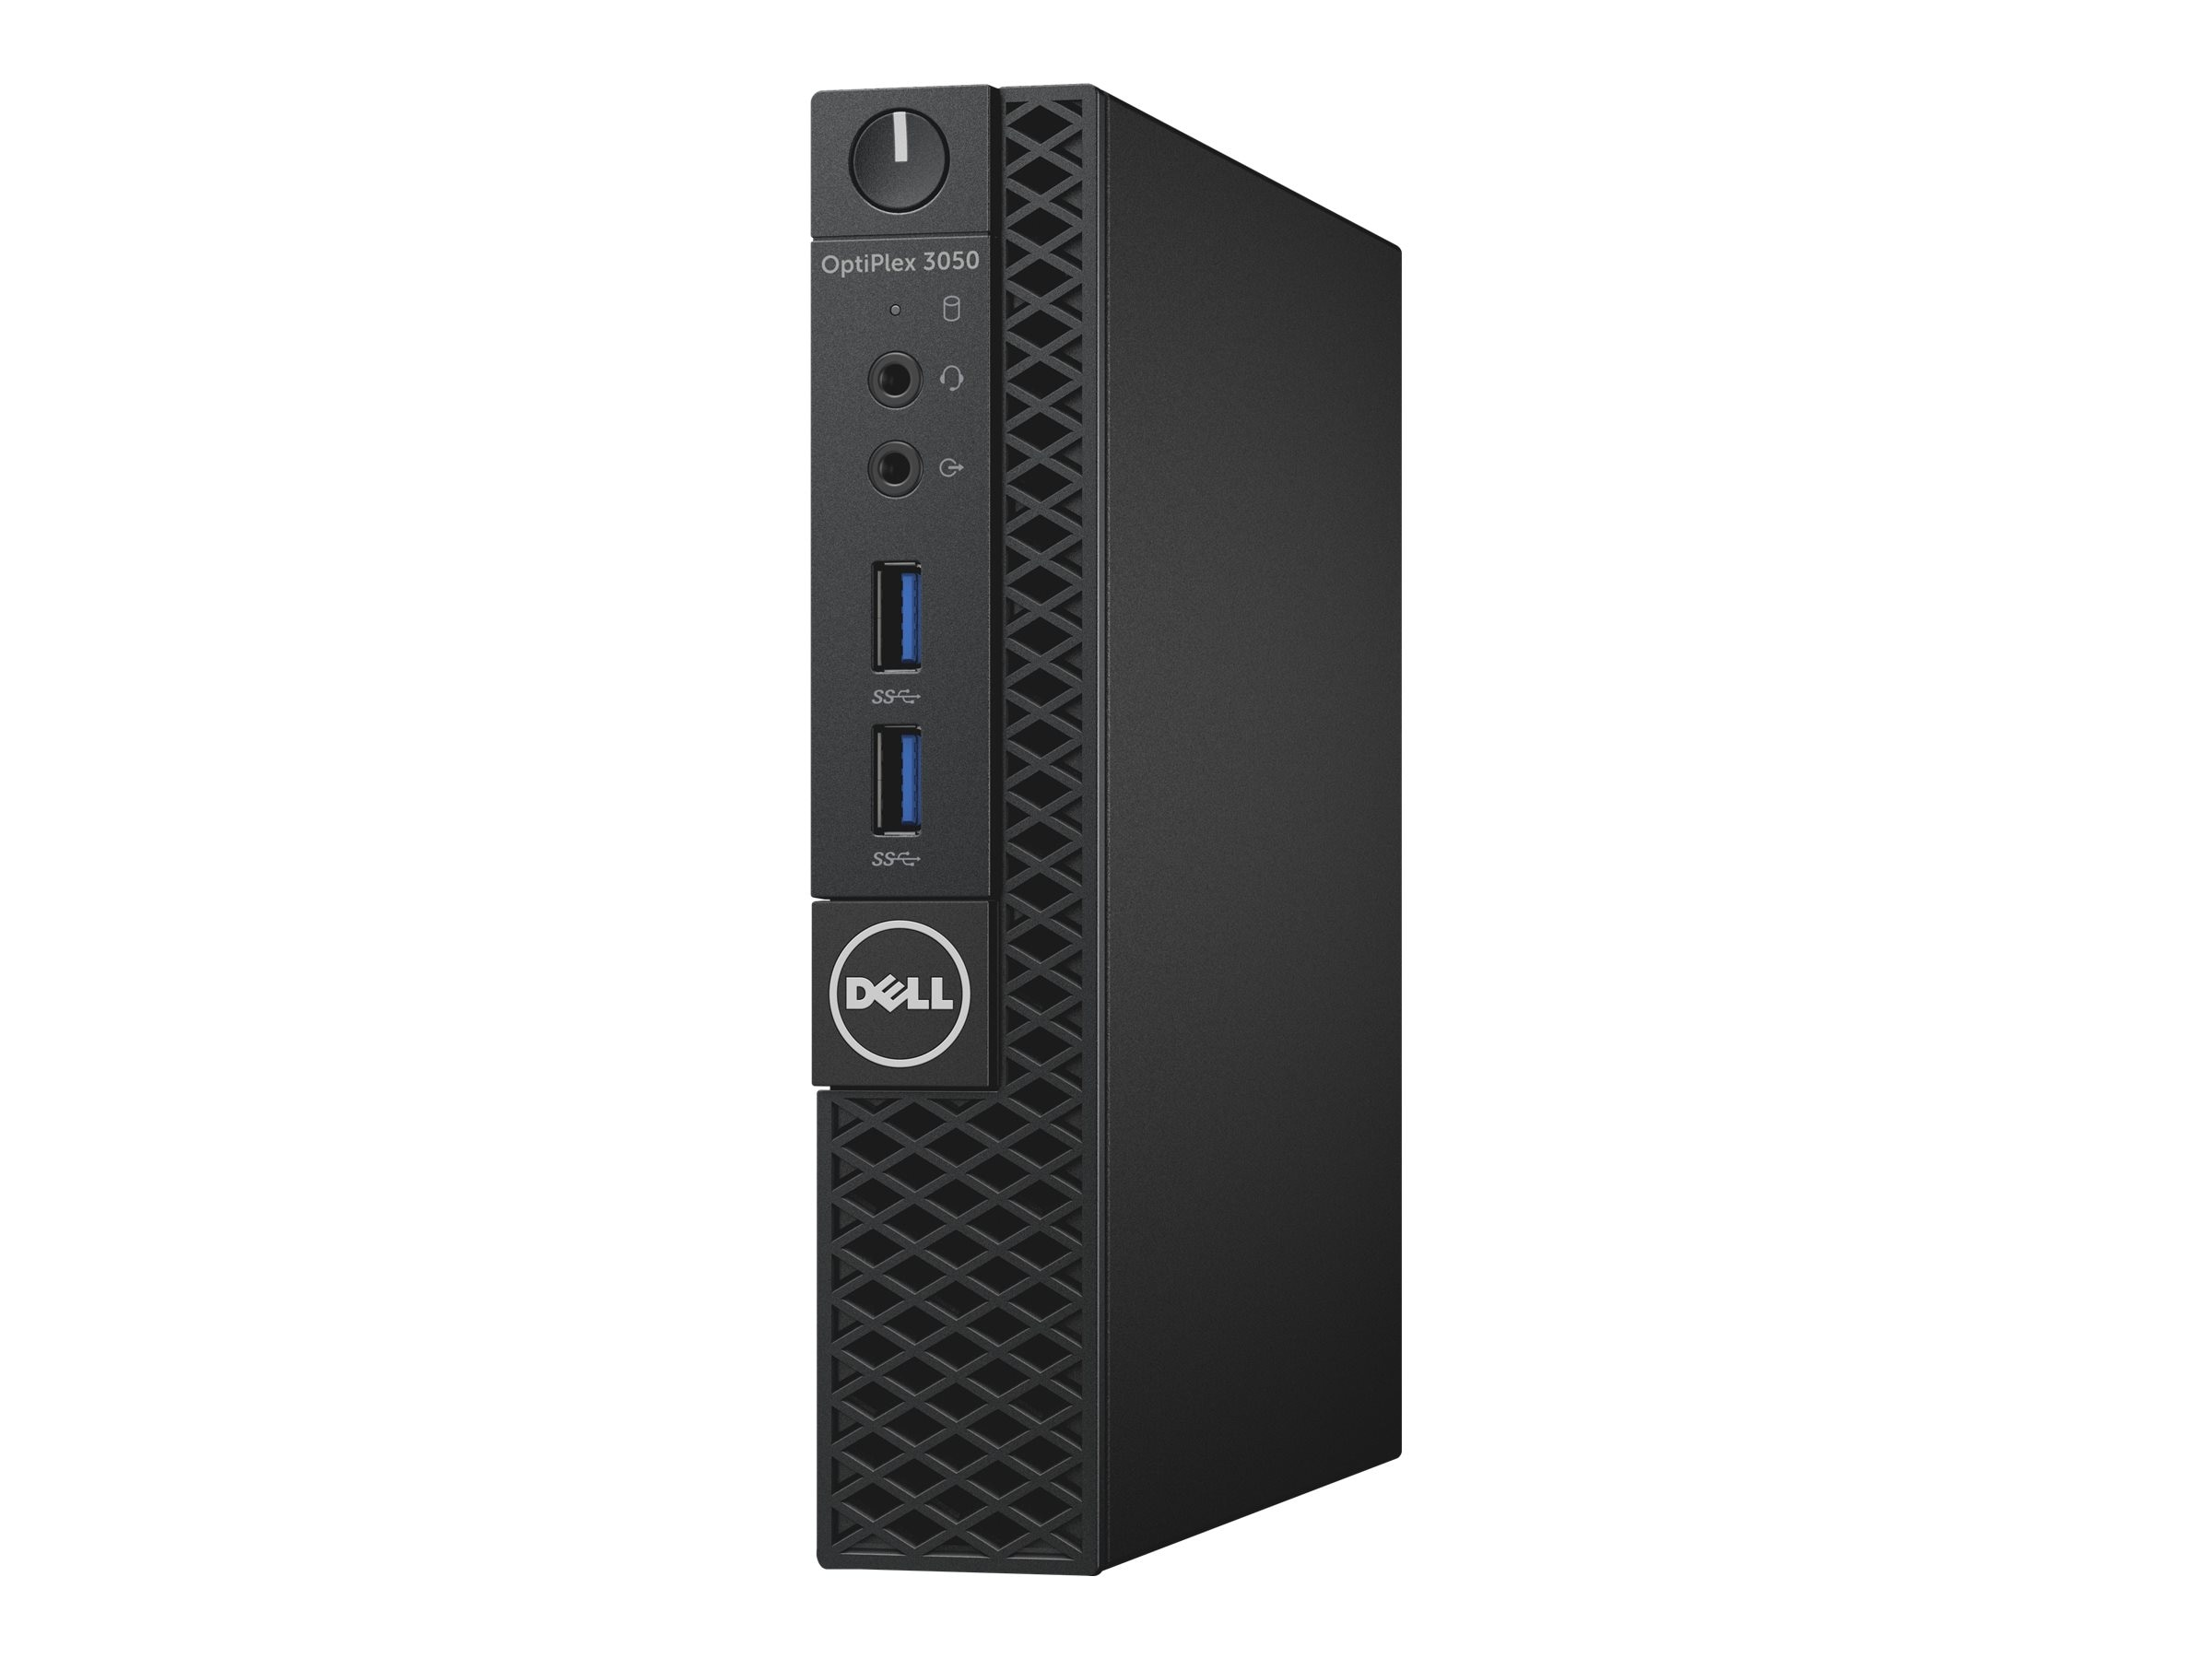 Dell OptiPlex 3050 3.4GHz Core i3 4GB RAM 128GB hard drive